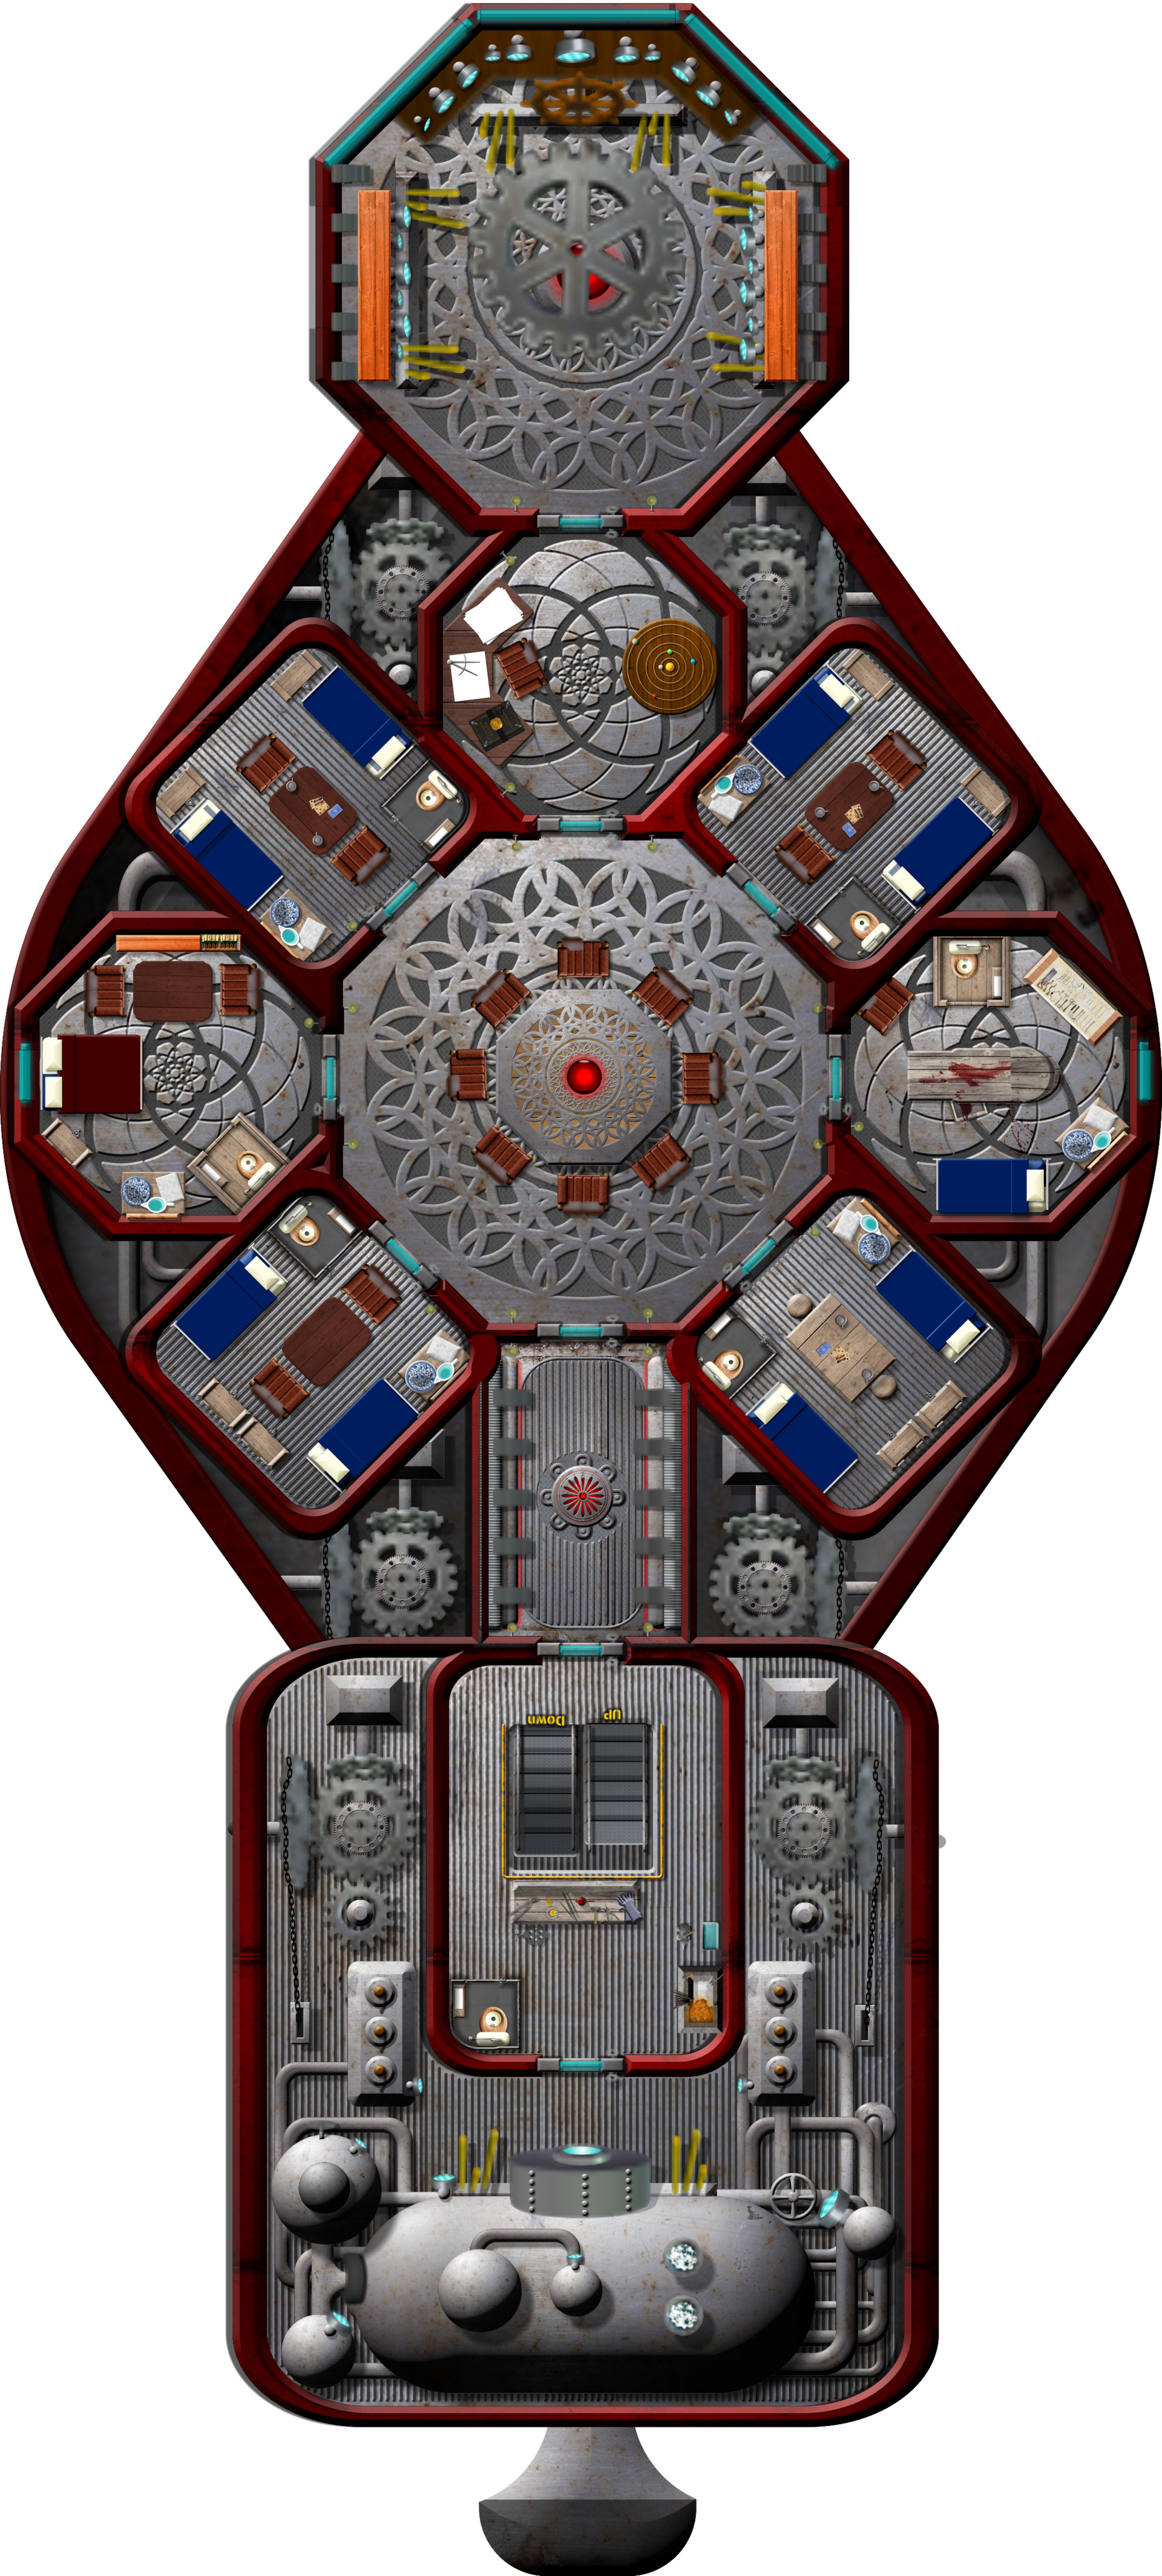 Big Ships Engine Rooms: Spelljammer And Exotic Sci-Fi Deck Plans